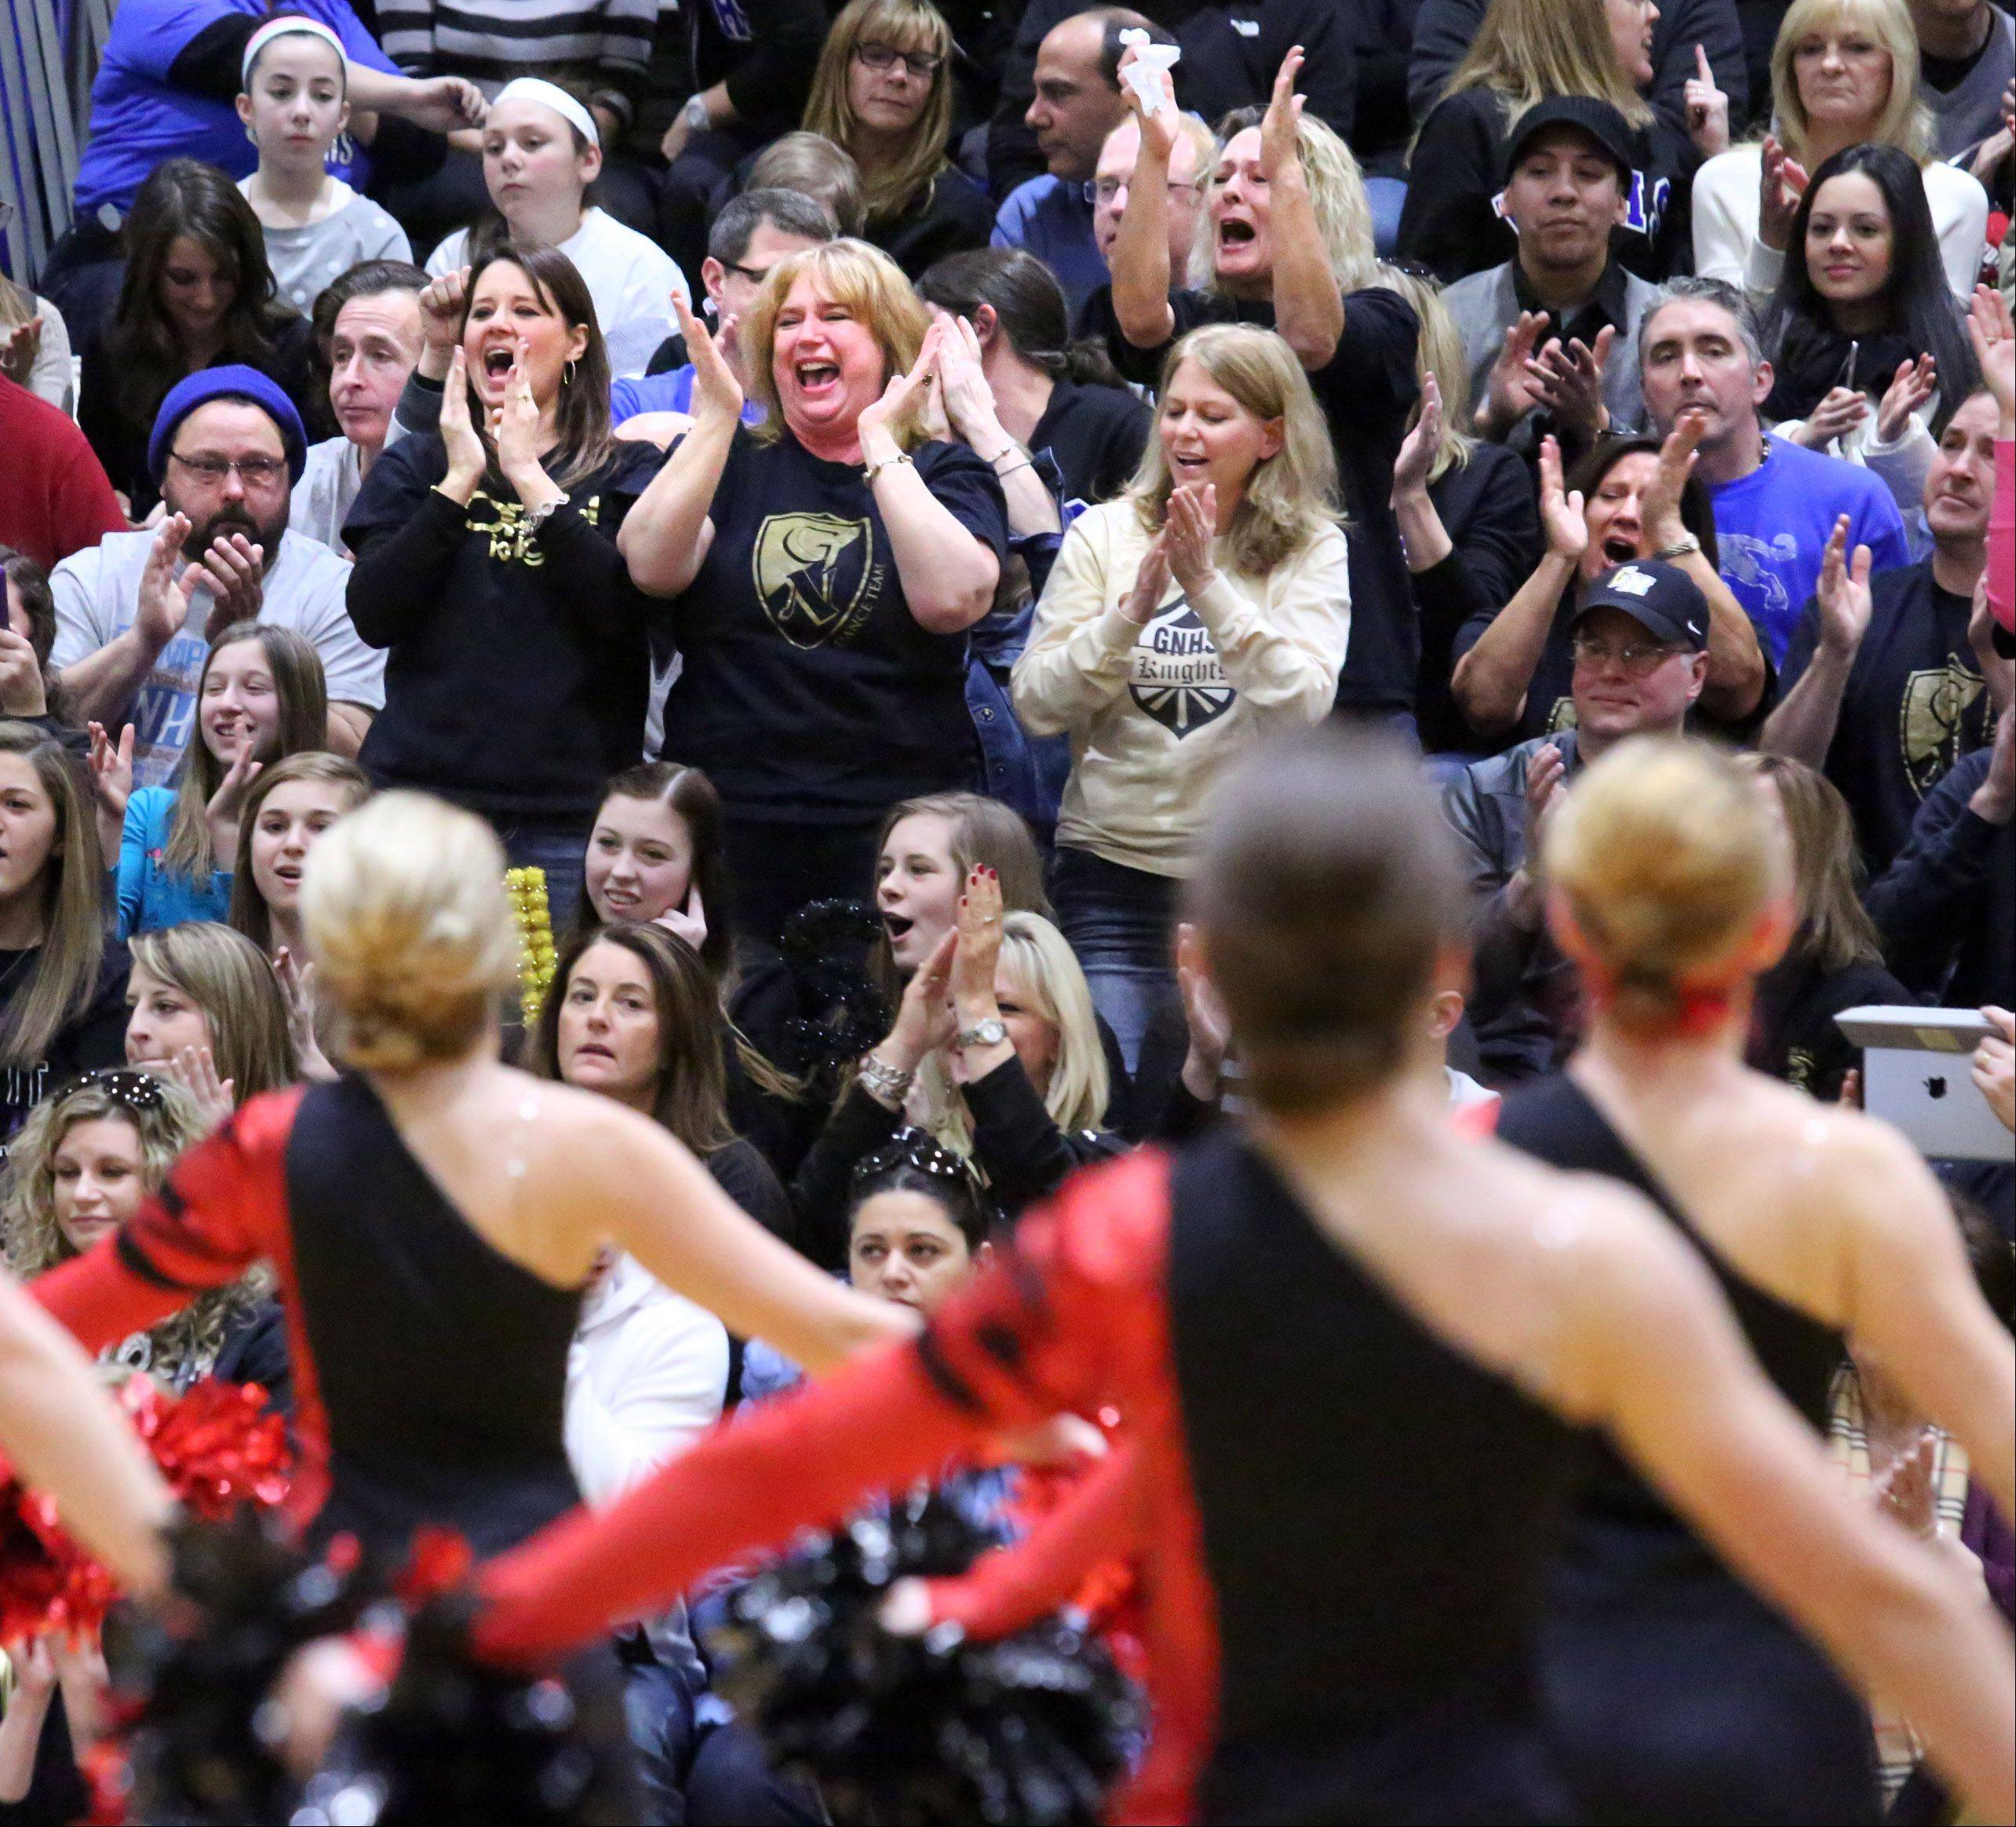 Grayslake North High School's dance team parents and fans cheer after the team competes at the IHSA competitive dance sectional at Glenbrook South High School on Saturday in Glenview.